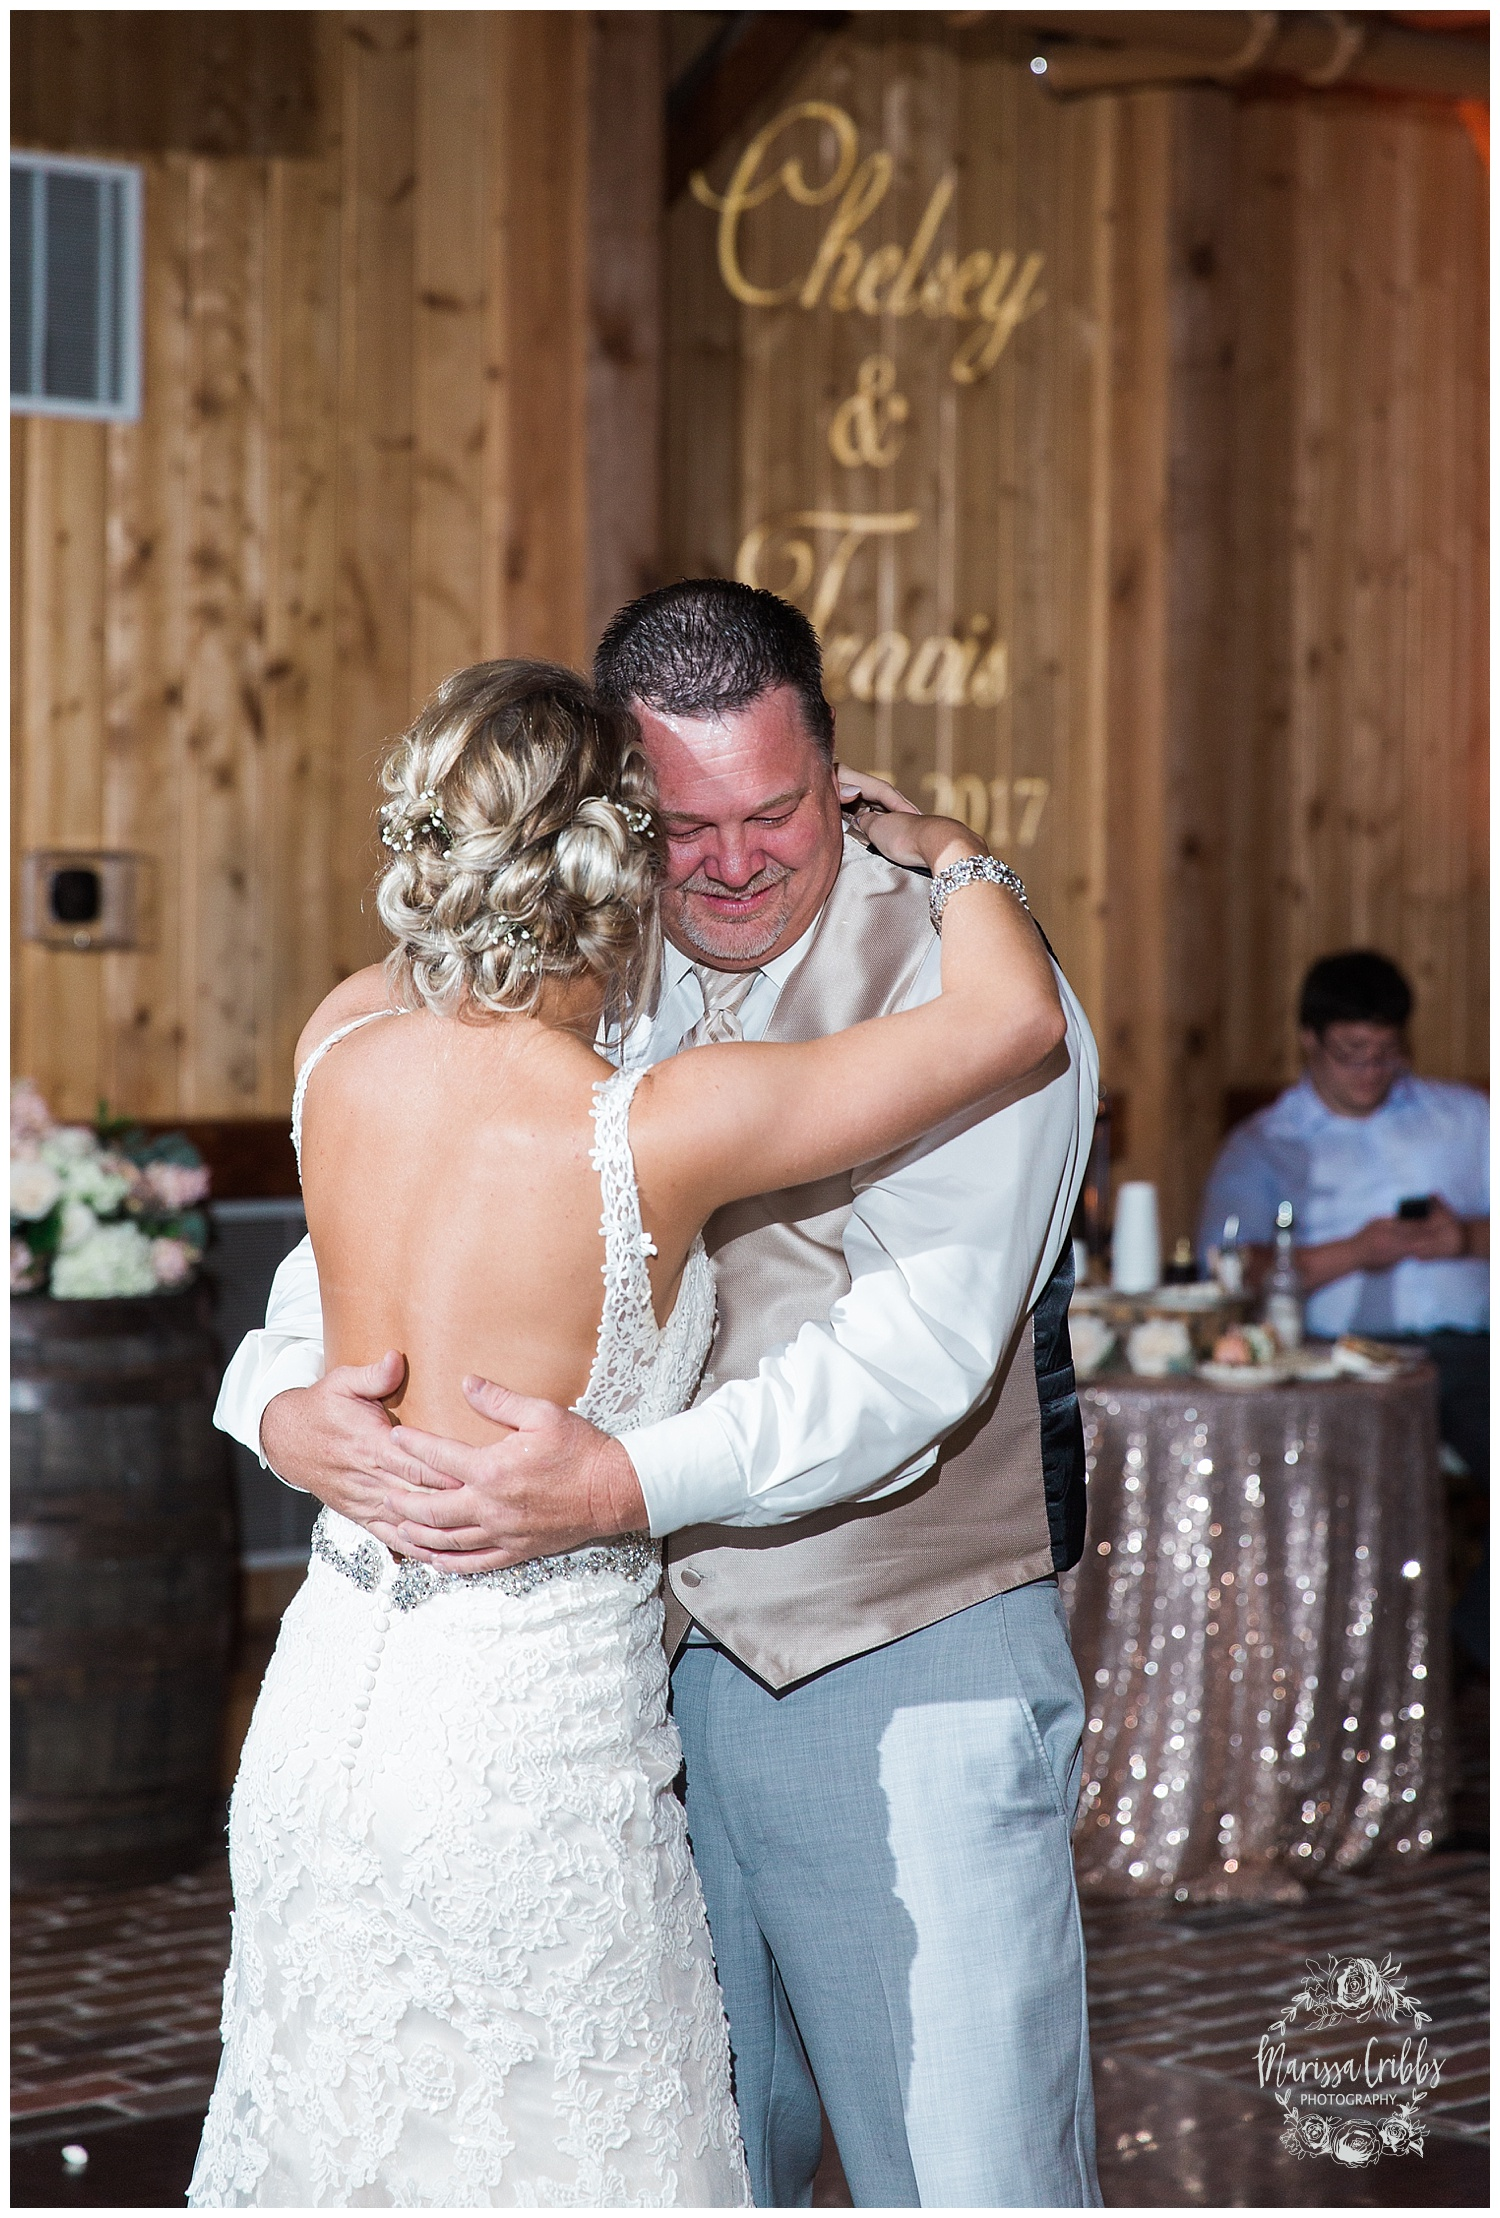 CHELSEY & TRAVIS MARRIED | MILDALE FARM WEDDING | KC WEDDING PHOTOGRAPHERS | MARISSA CRIBBS PHOTOGRAPHY_1385.jpg